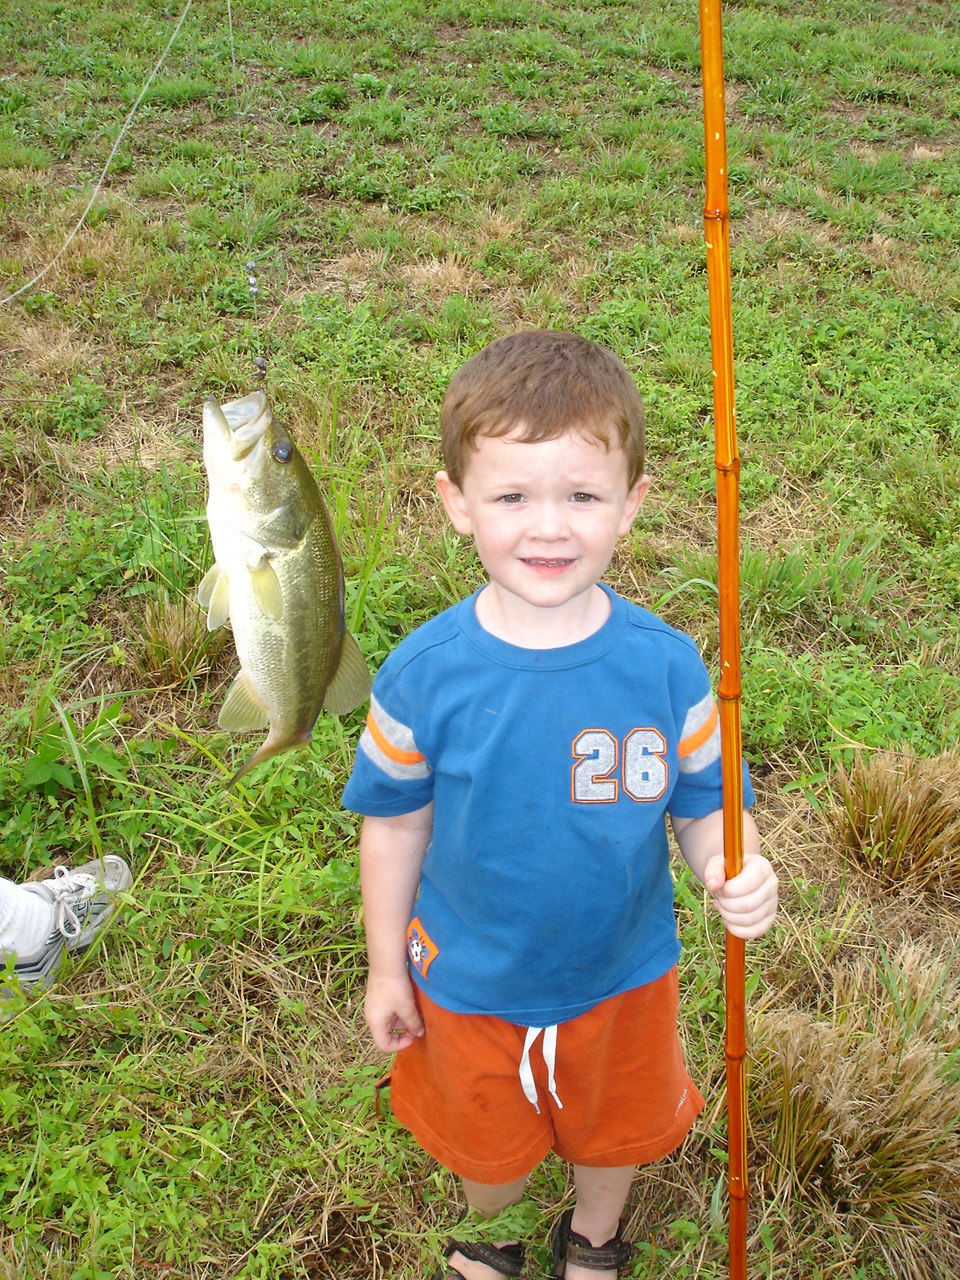 One of His Very First Fish